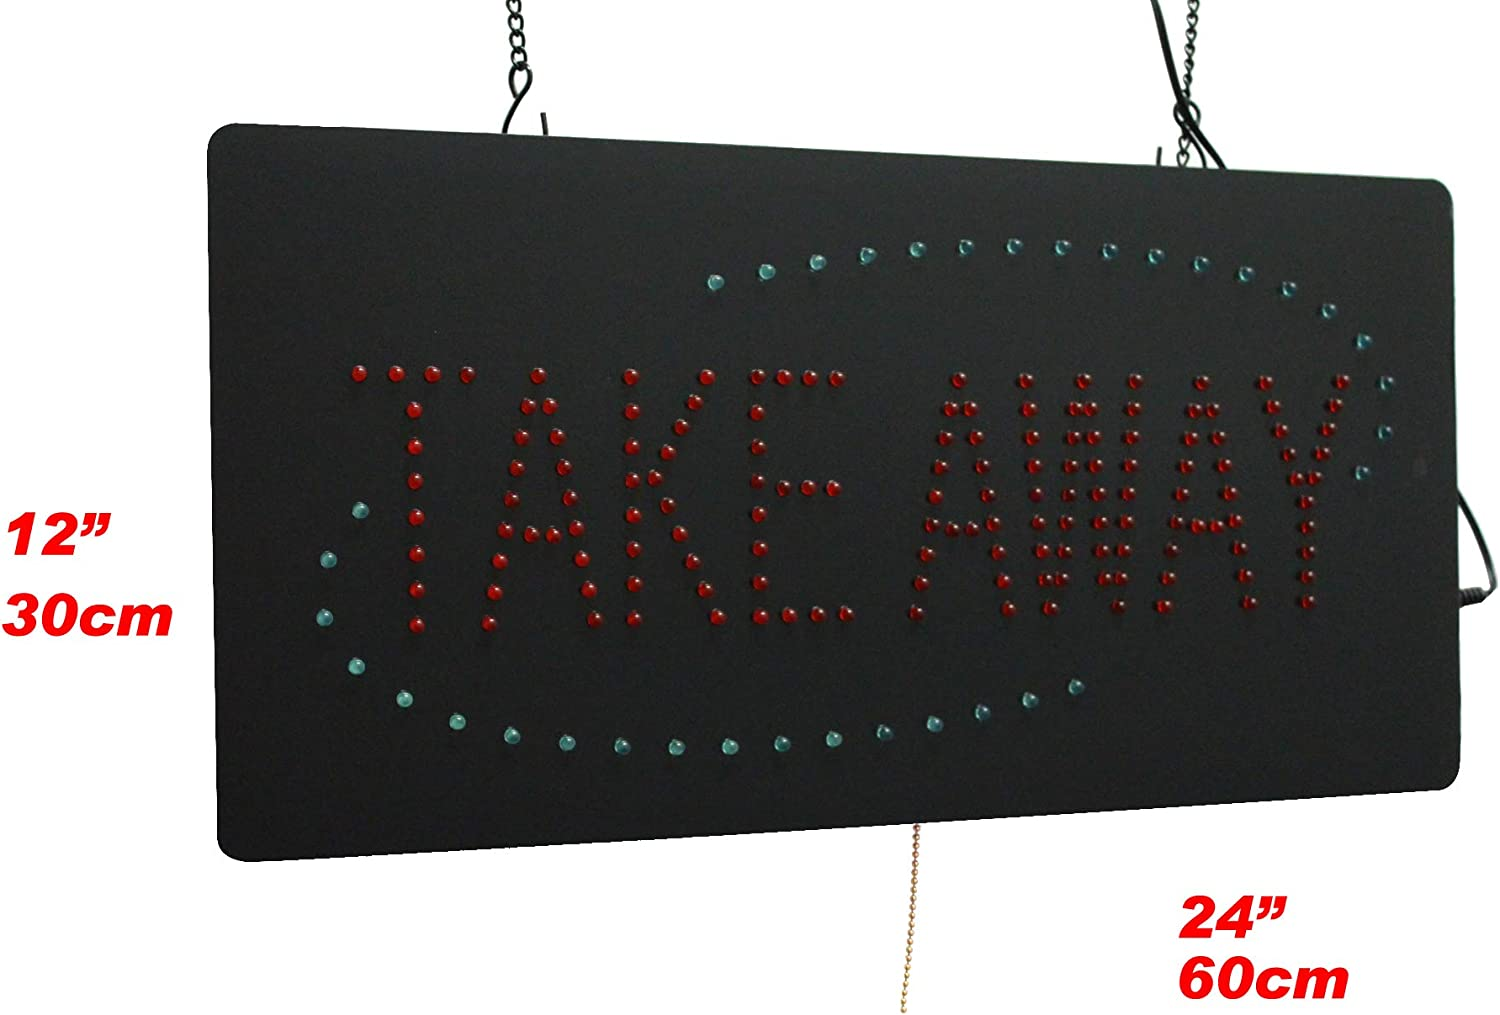 Shop Take Away Sign LED Neon Open Display TOPKING Signage Business Store Window Grand Opening Gift